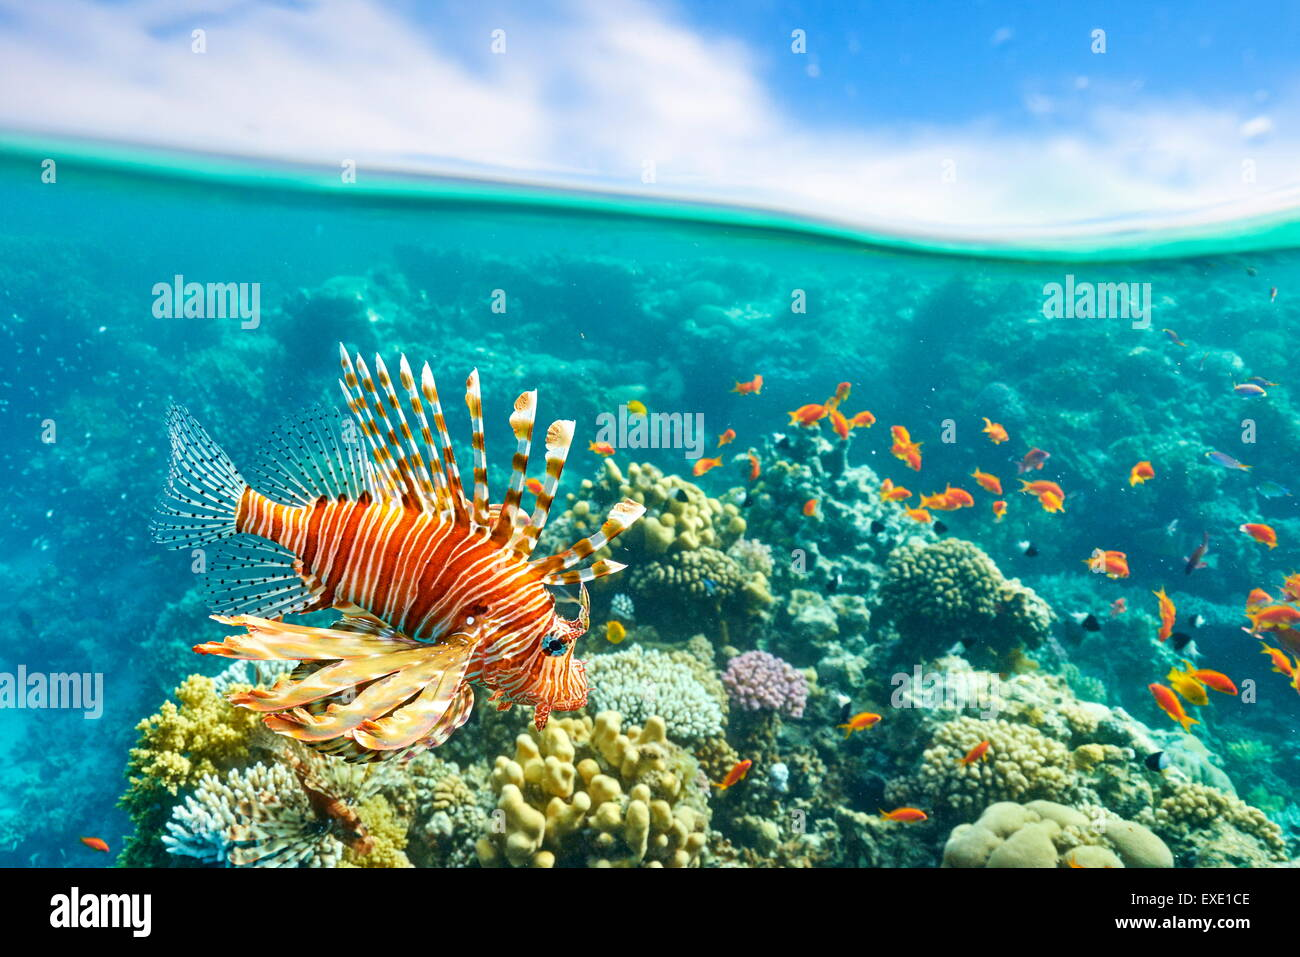 Lionfish over Reef, Pterois volitans, Dahab, Sinai, Red Sea, Egypt - Stock Image